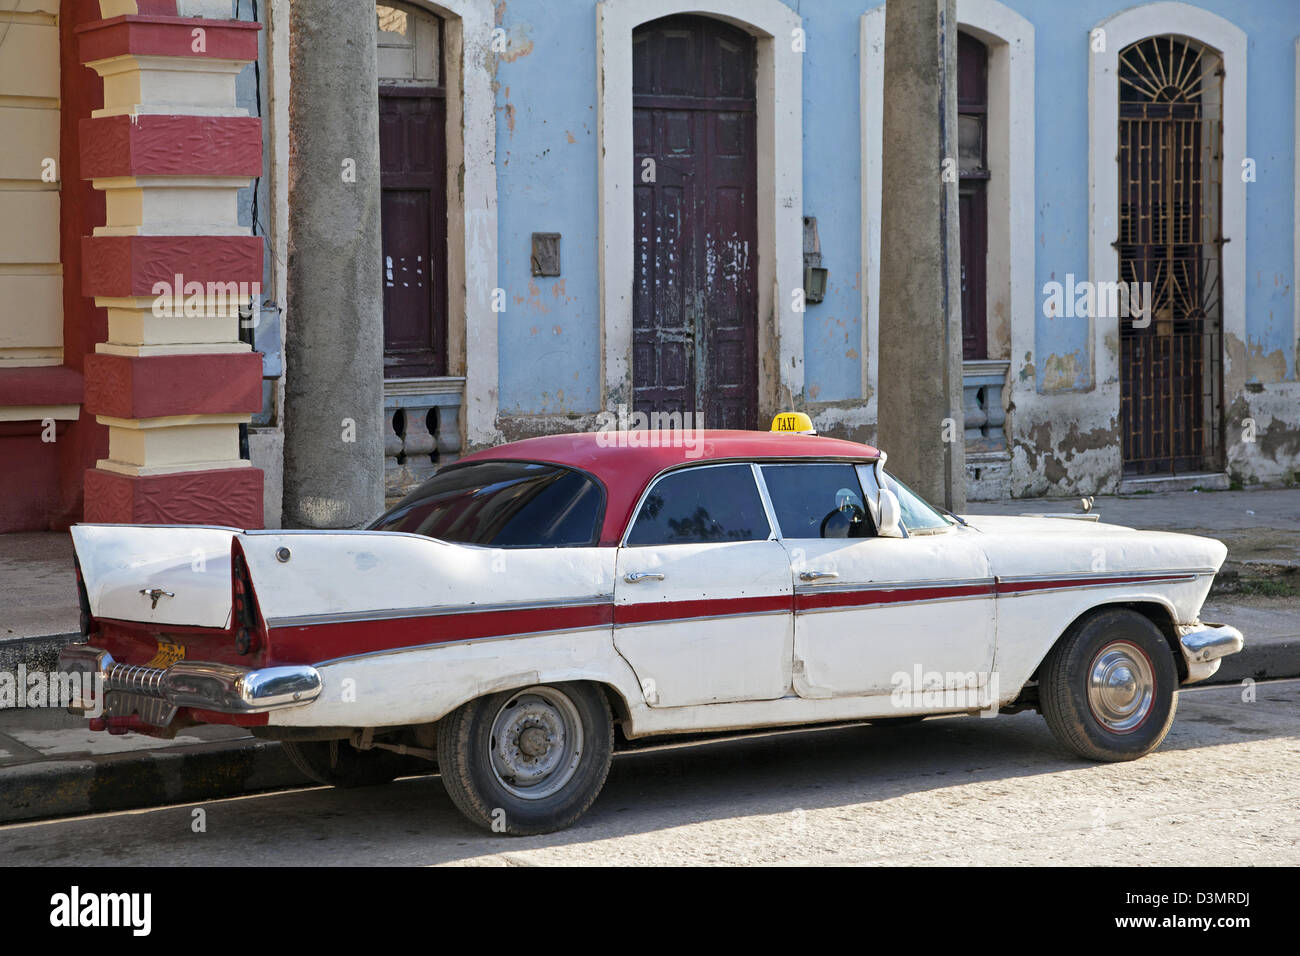 Old 1950s vintage American car / Yank tank used as taxi in Holguin ...